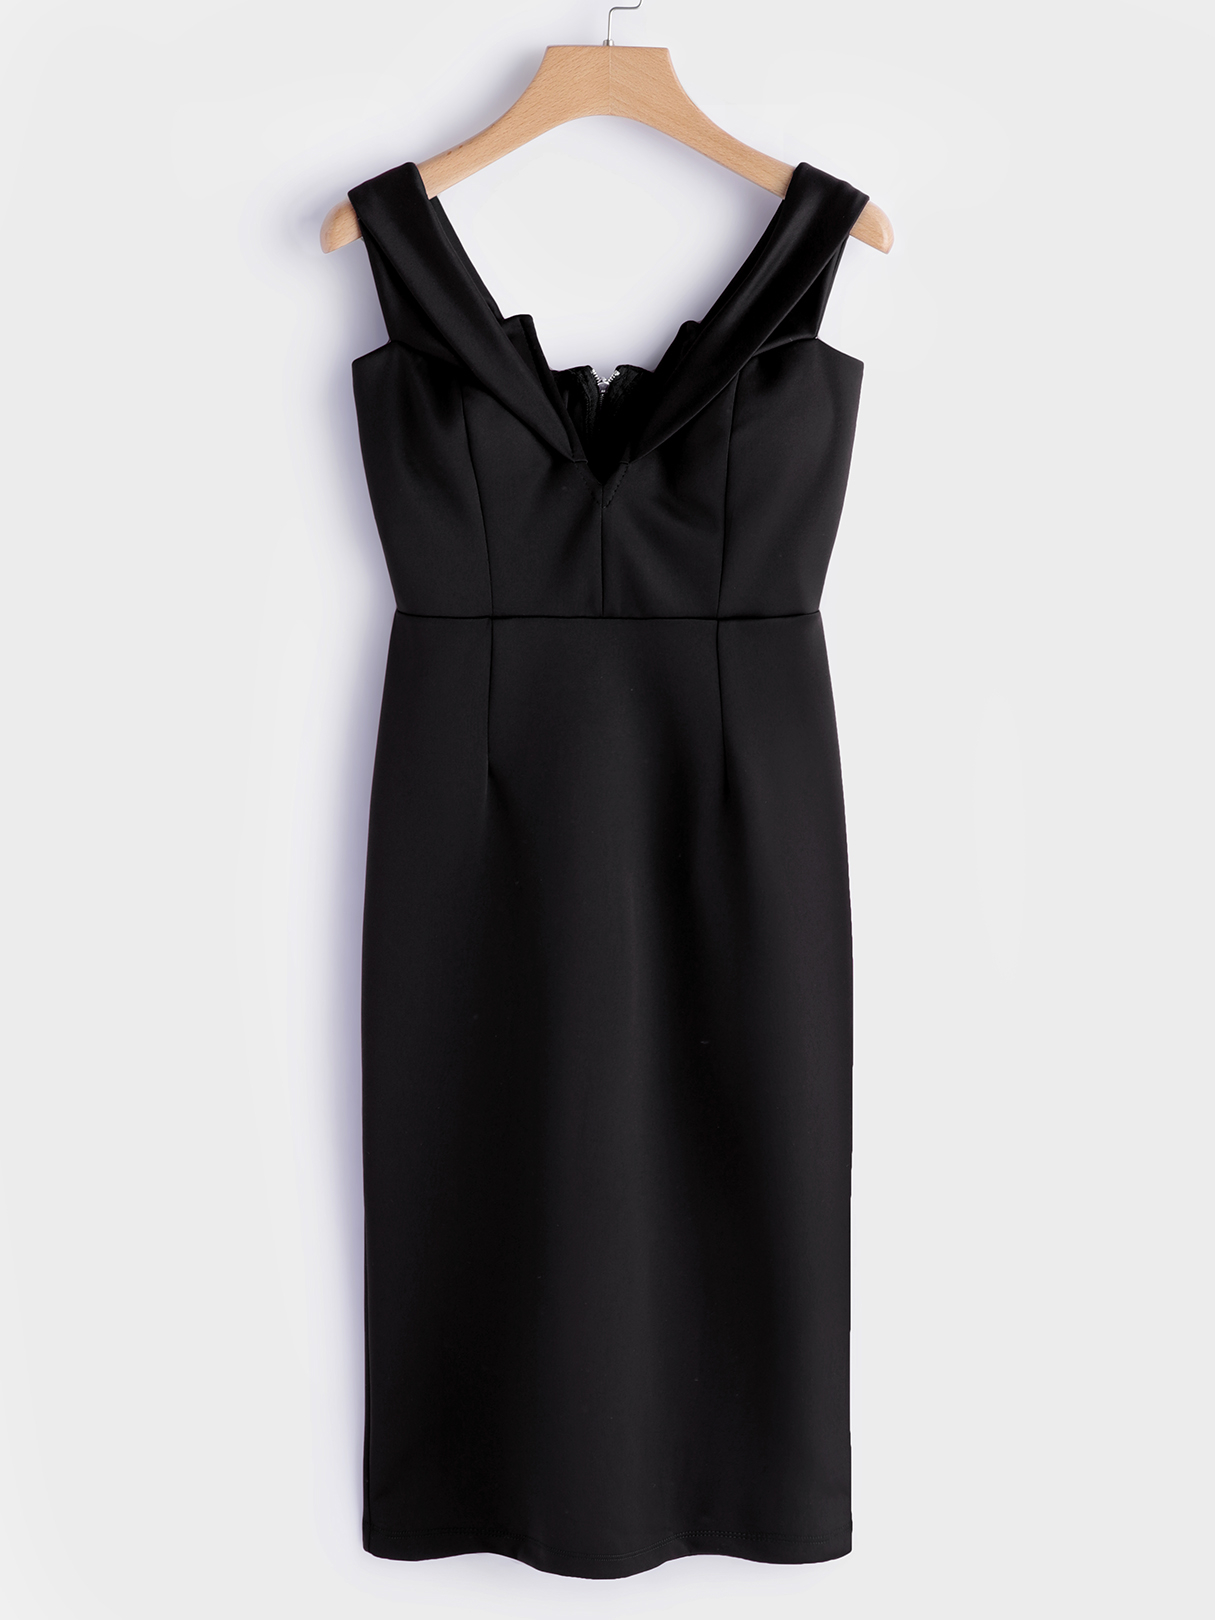 Black Backless Off Shoulder V-neck Midi Dress black zip design plain round neck flared sleeves midi dress